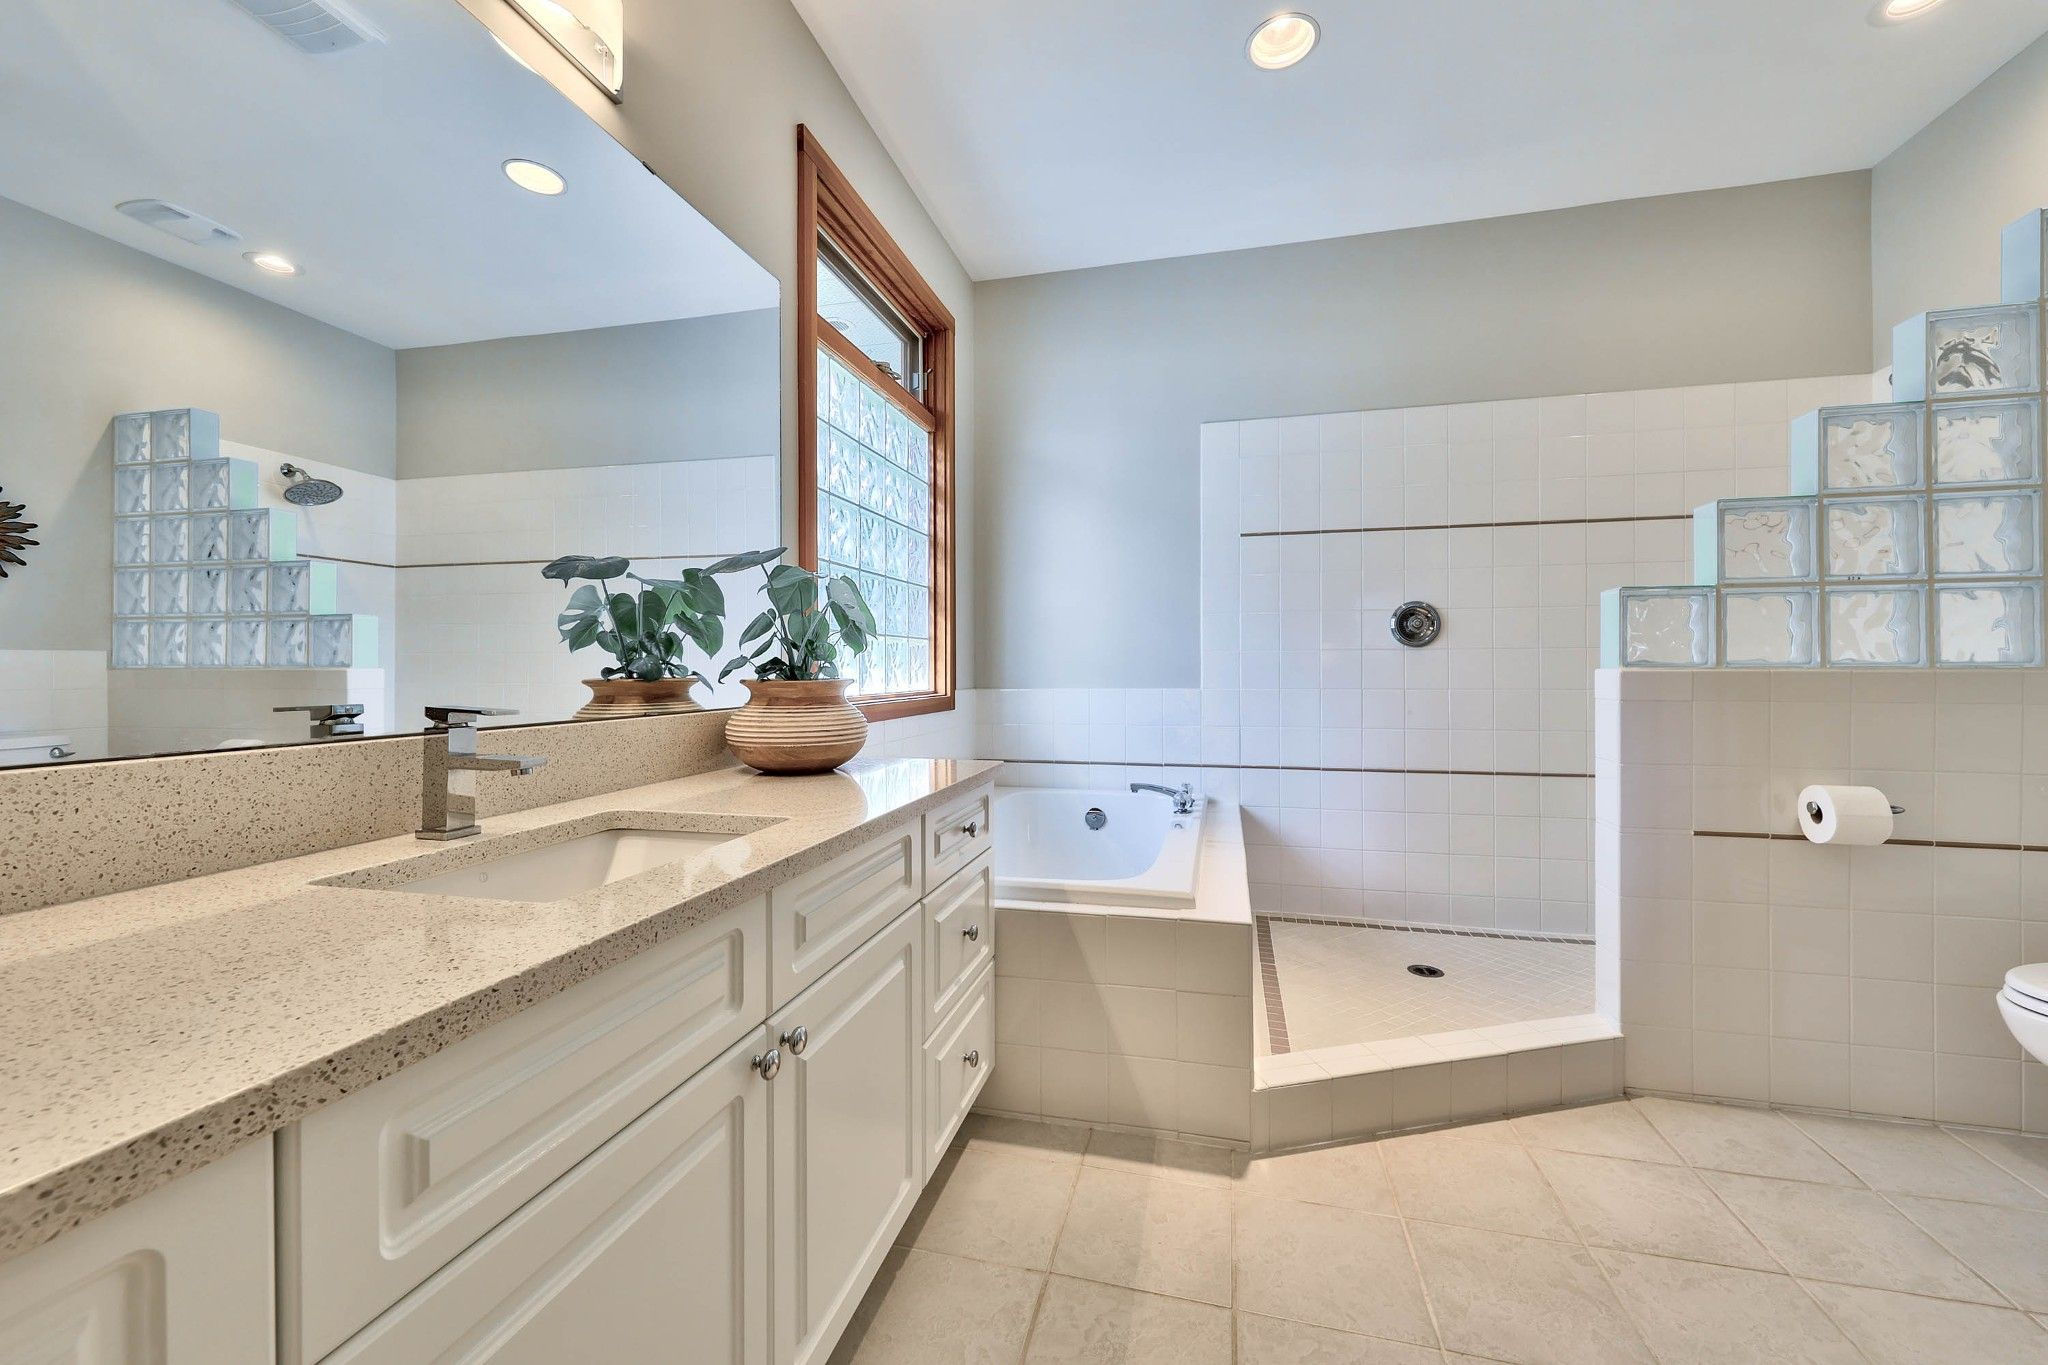 Photo 23: Photos: 3299 E Shuswap Road in Kamloops: South Thompson Valley House for sale : MLS®# 162162